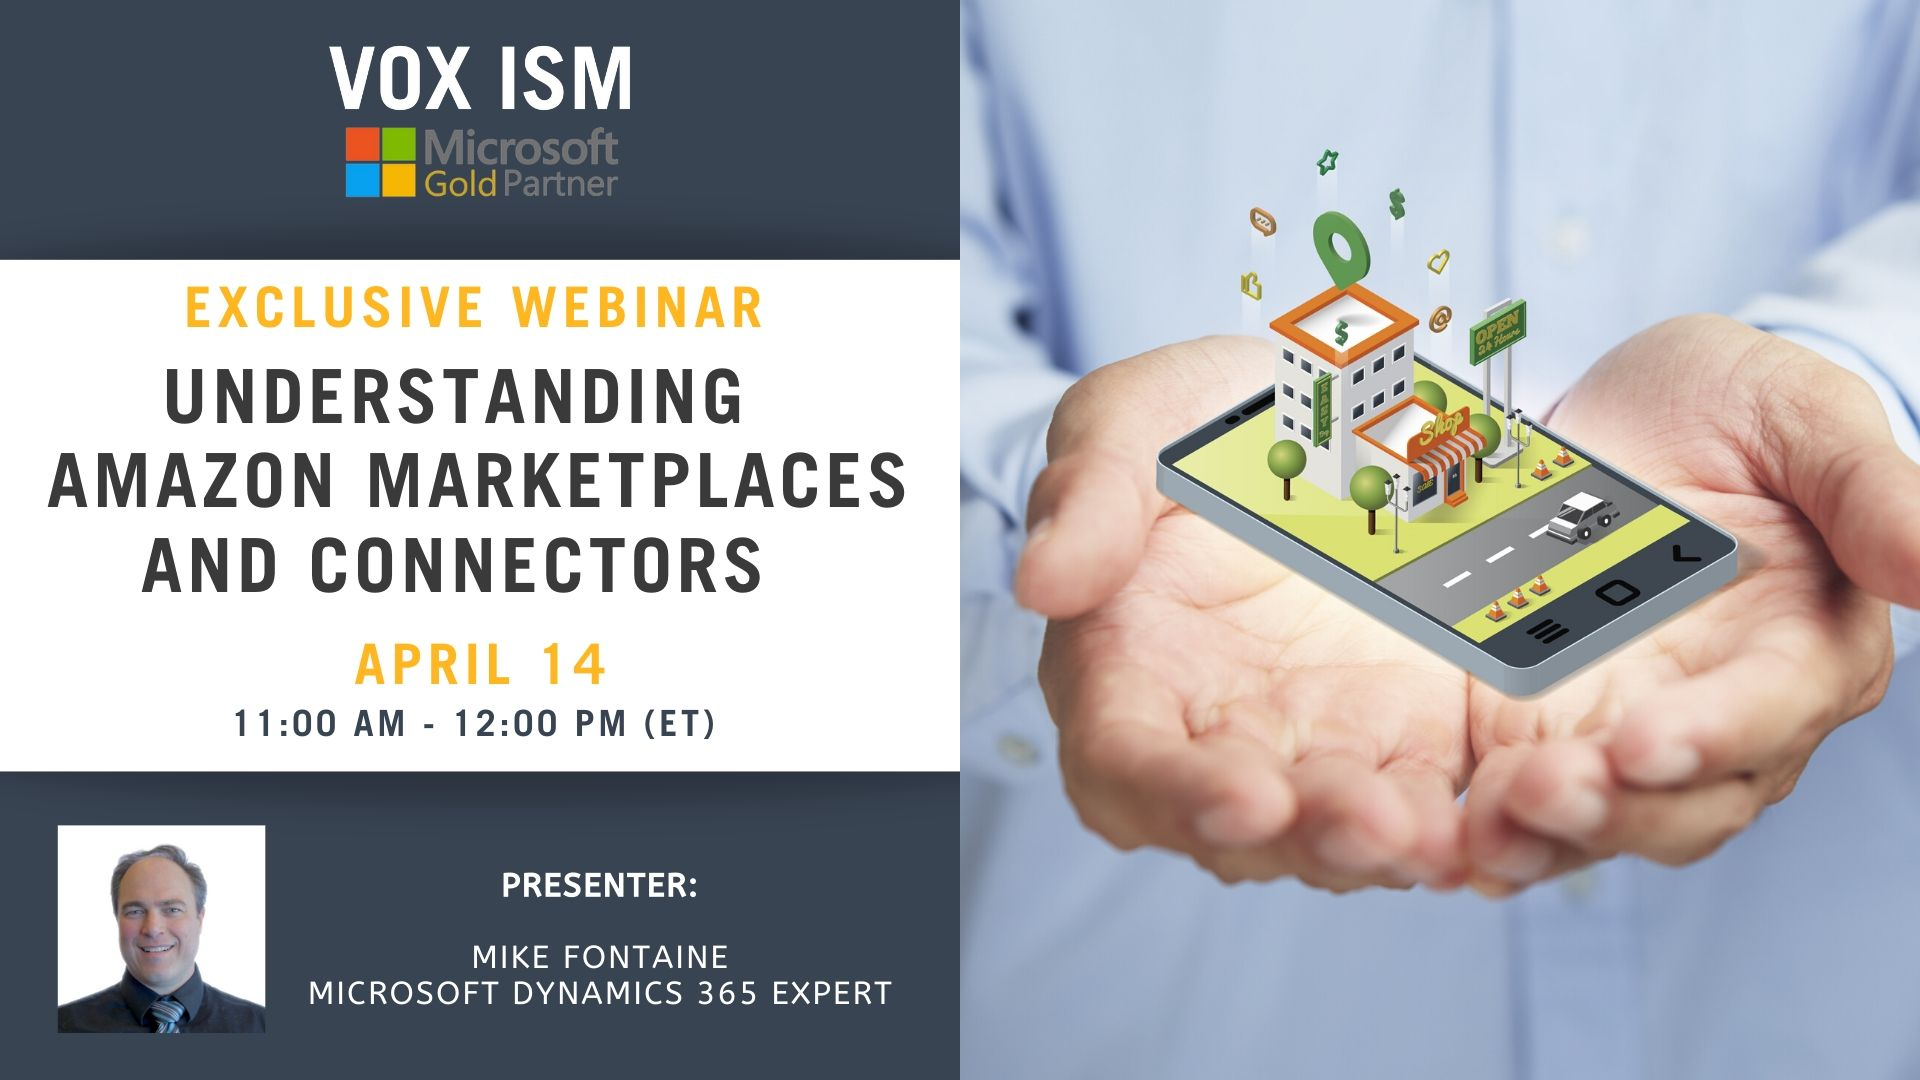 Understanding Amazon Marketplaces and Connectors - April 14 - Webinar_VOX ISM